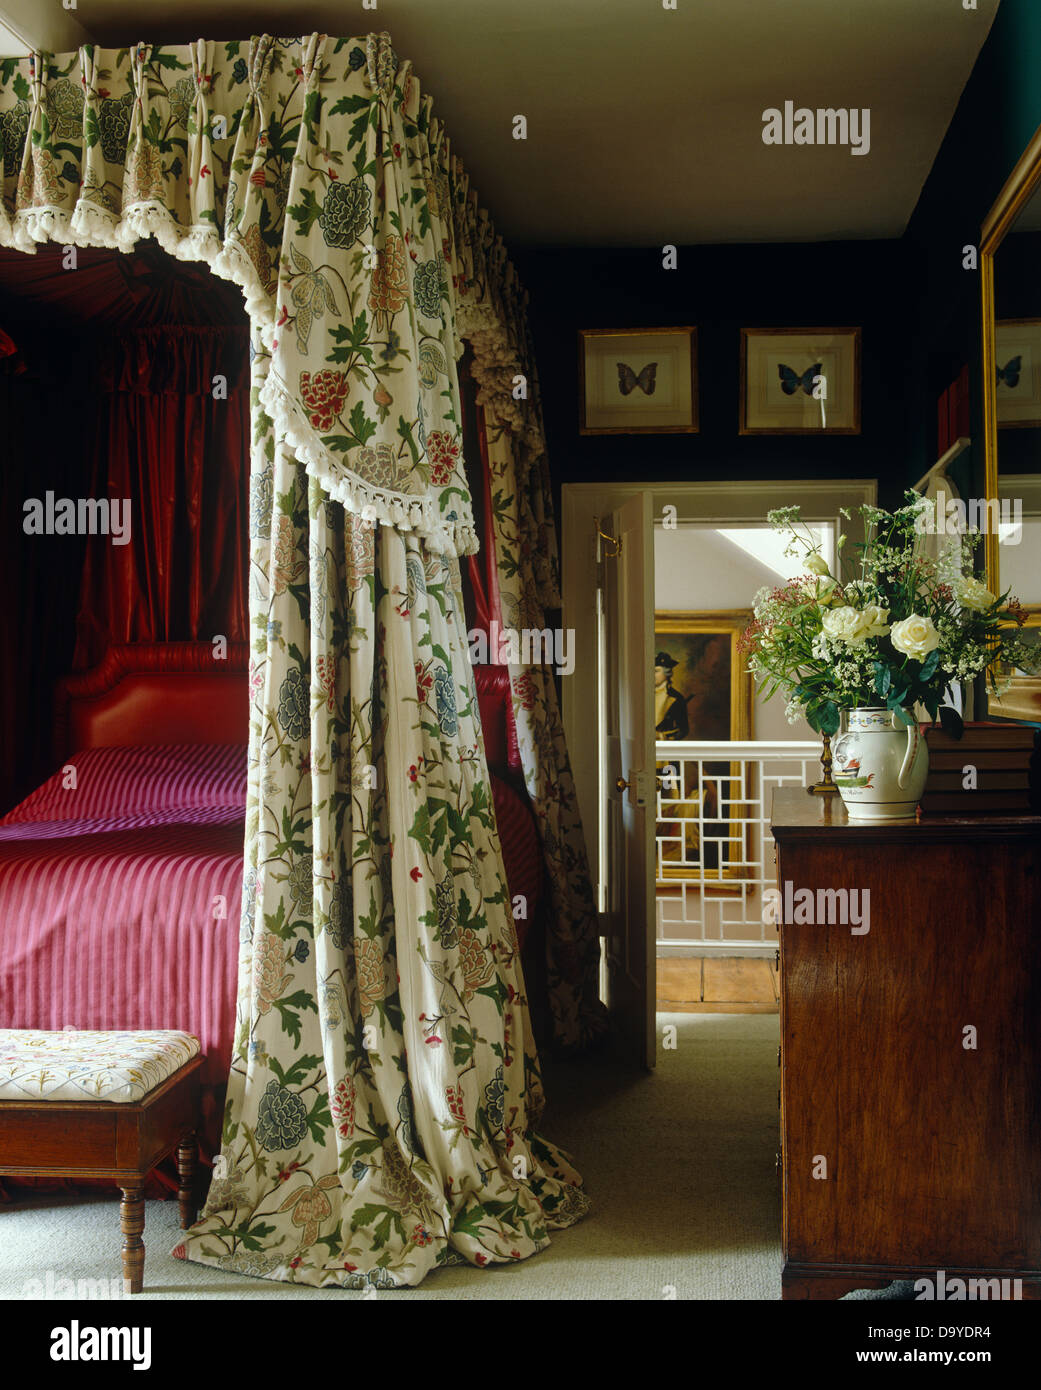 Country Bedroom With Four Poster Bed With Floral Drapes And Magenta Bed Cover Stock Photo Alamy